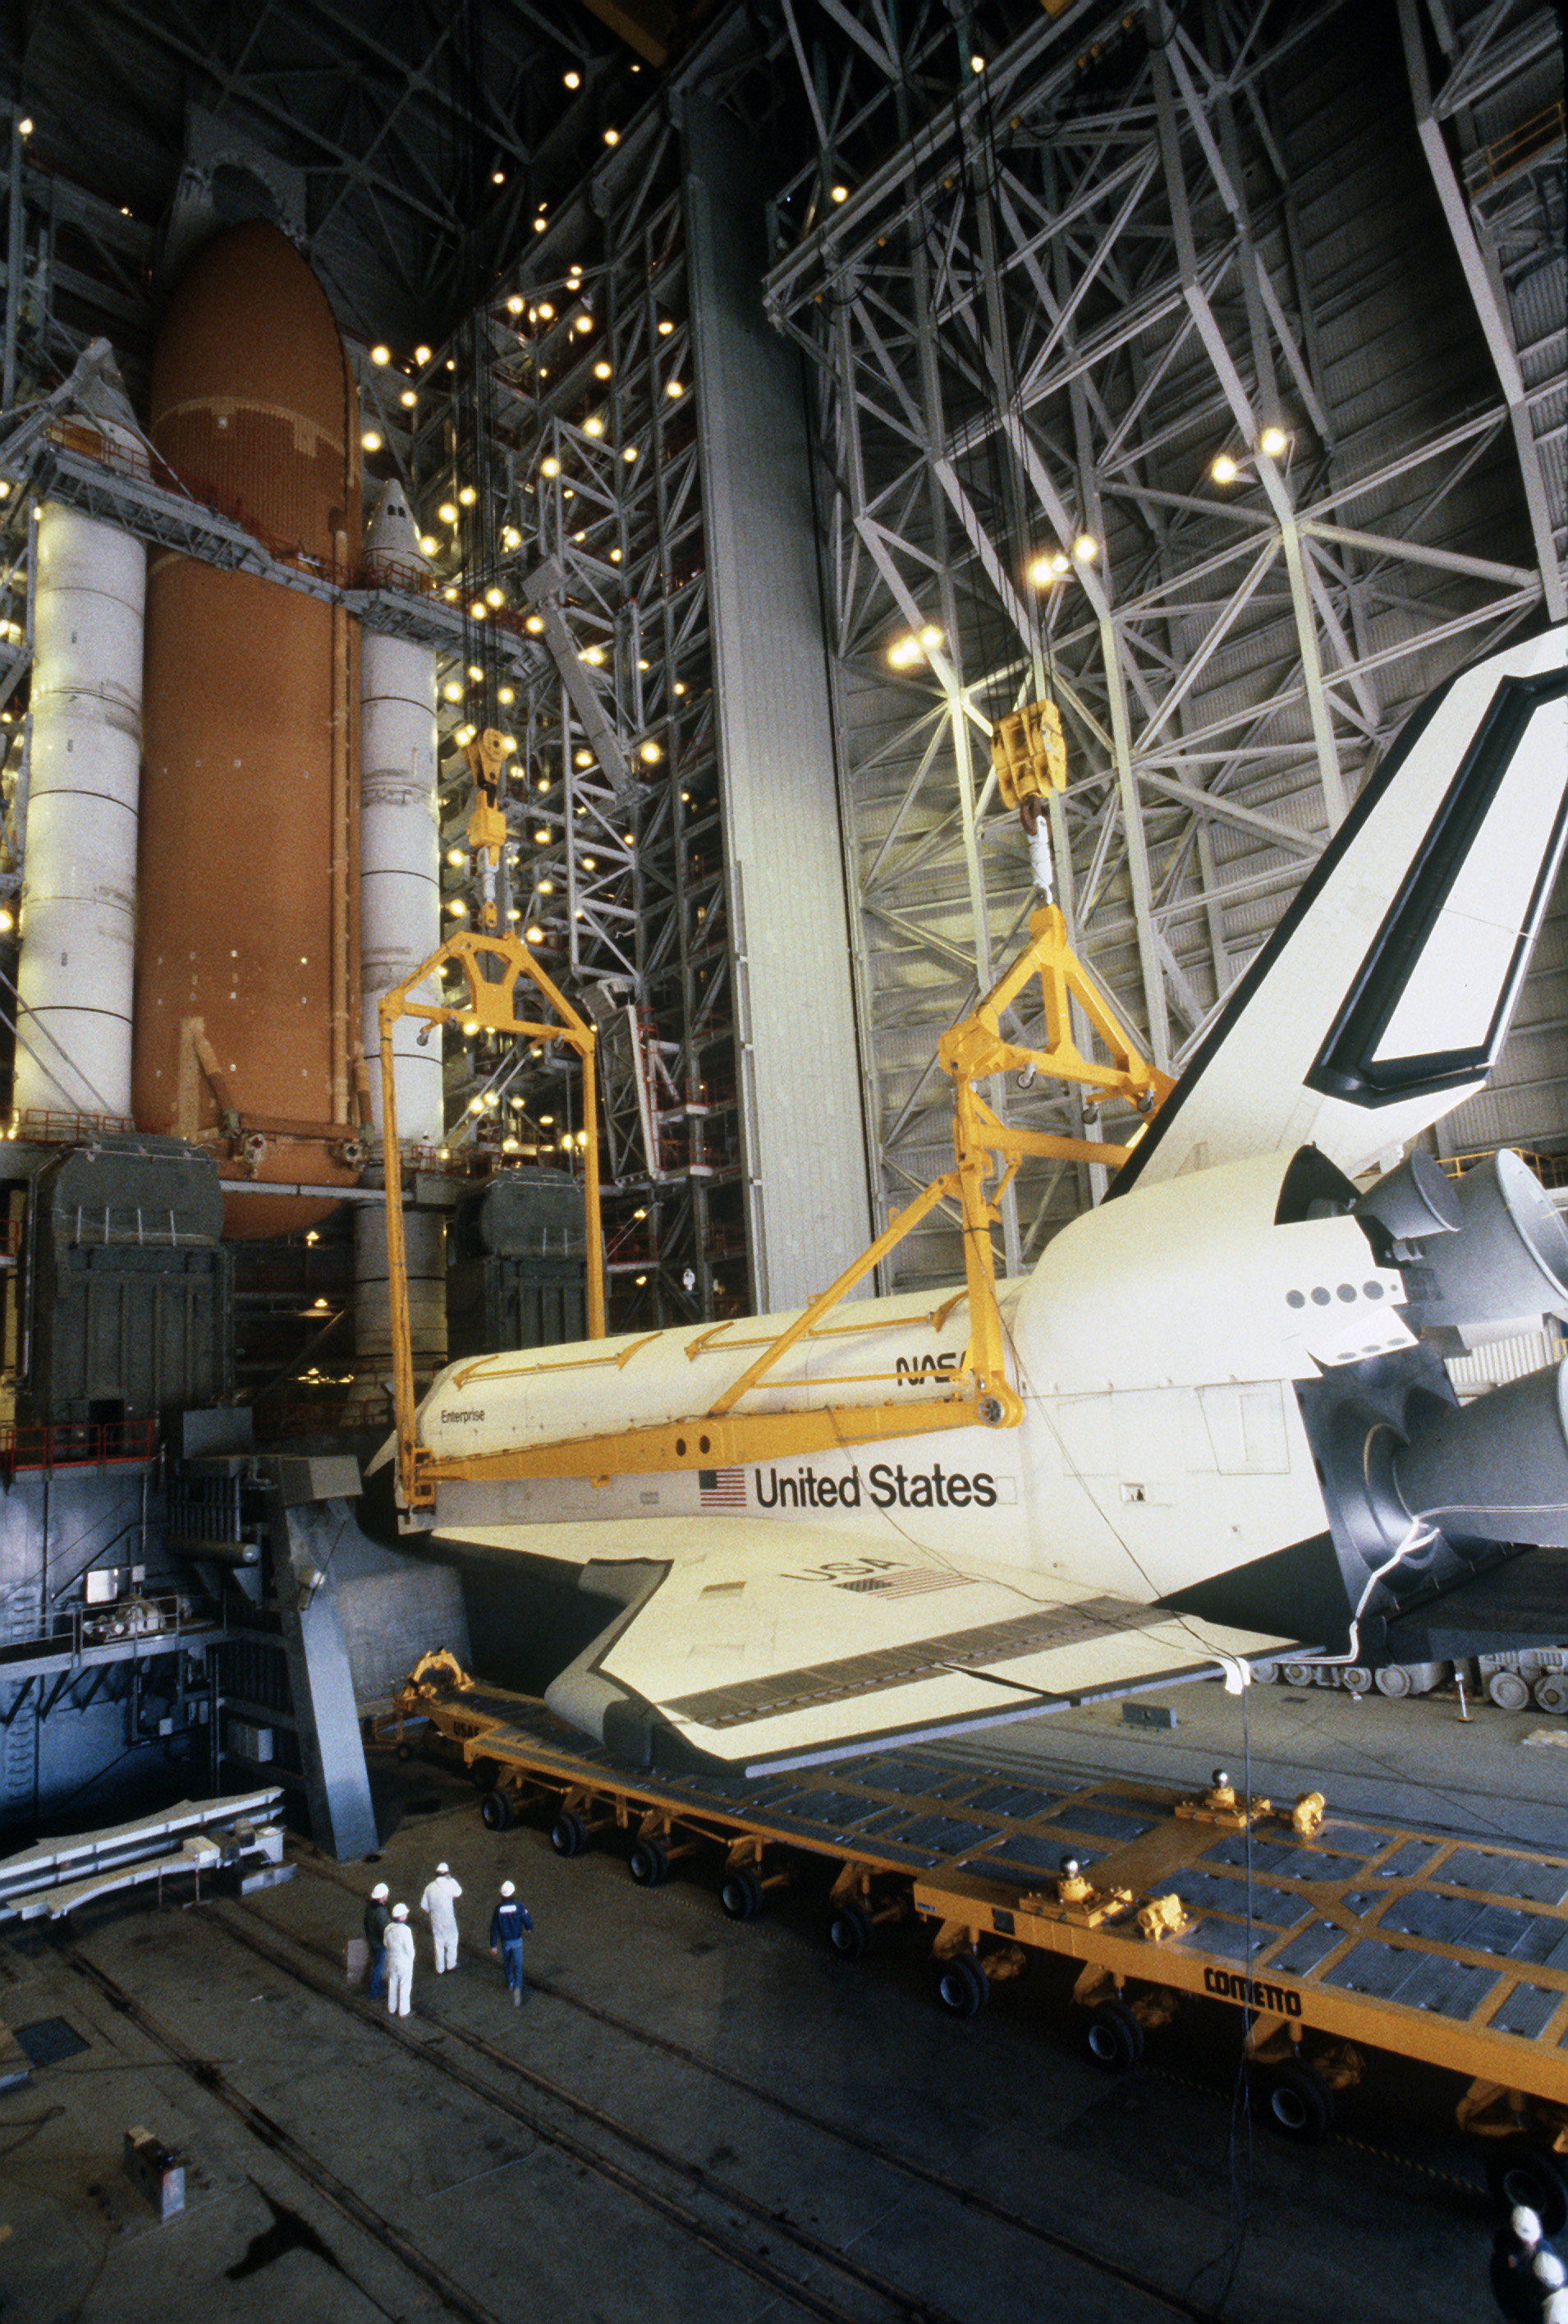 space shuttle at vandenberg - photo #27